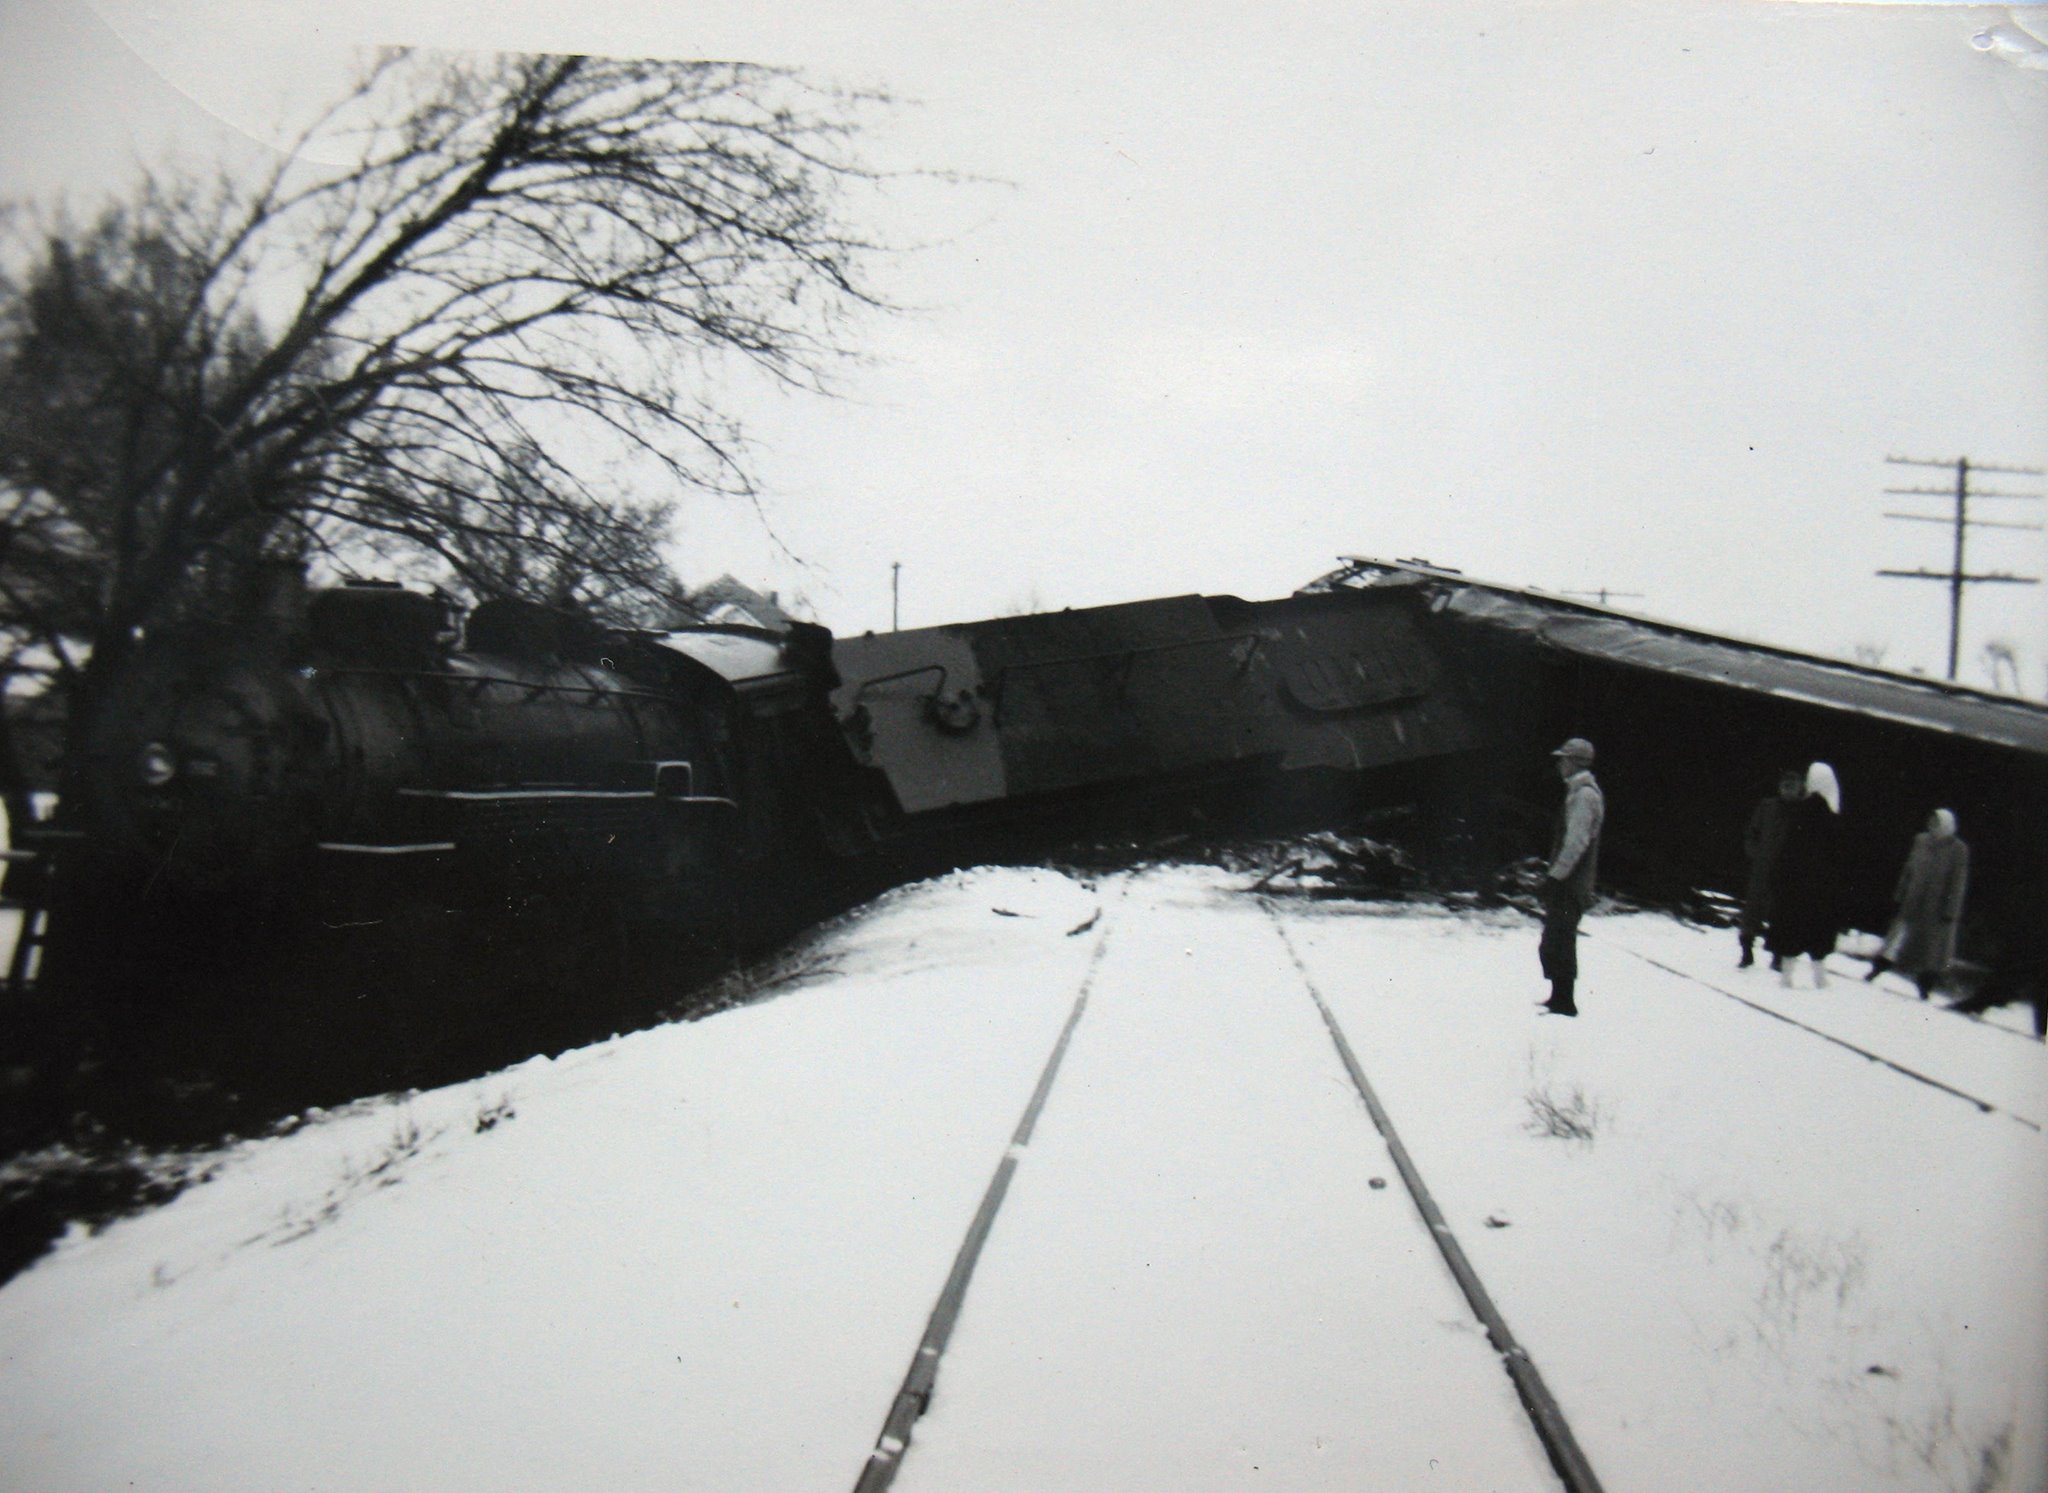 #75 PARSONS TO ST. LOUIS TRAIN WRECK IN NORTH PARSONS 2-15-51 CLICK ON PICTURE FOR HUGE PHOTO. I WAS THERE WHEN I WAS 5 YEARS OLD